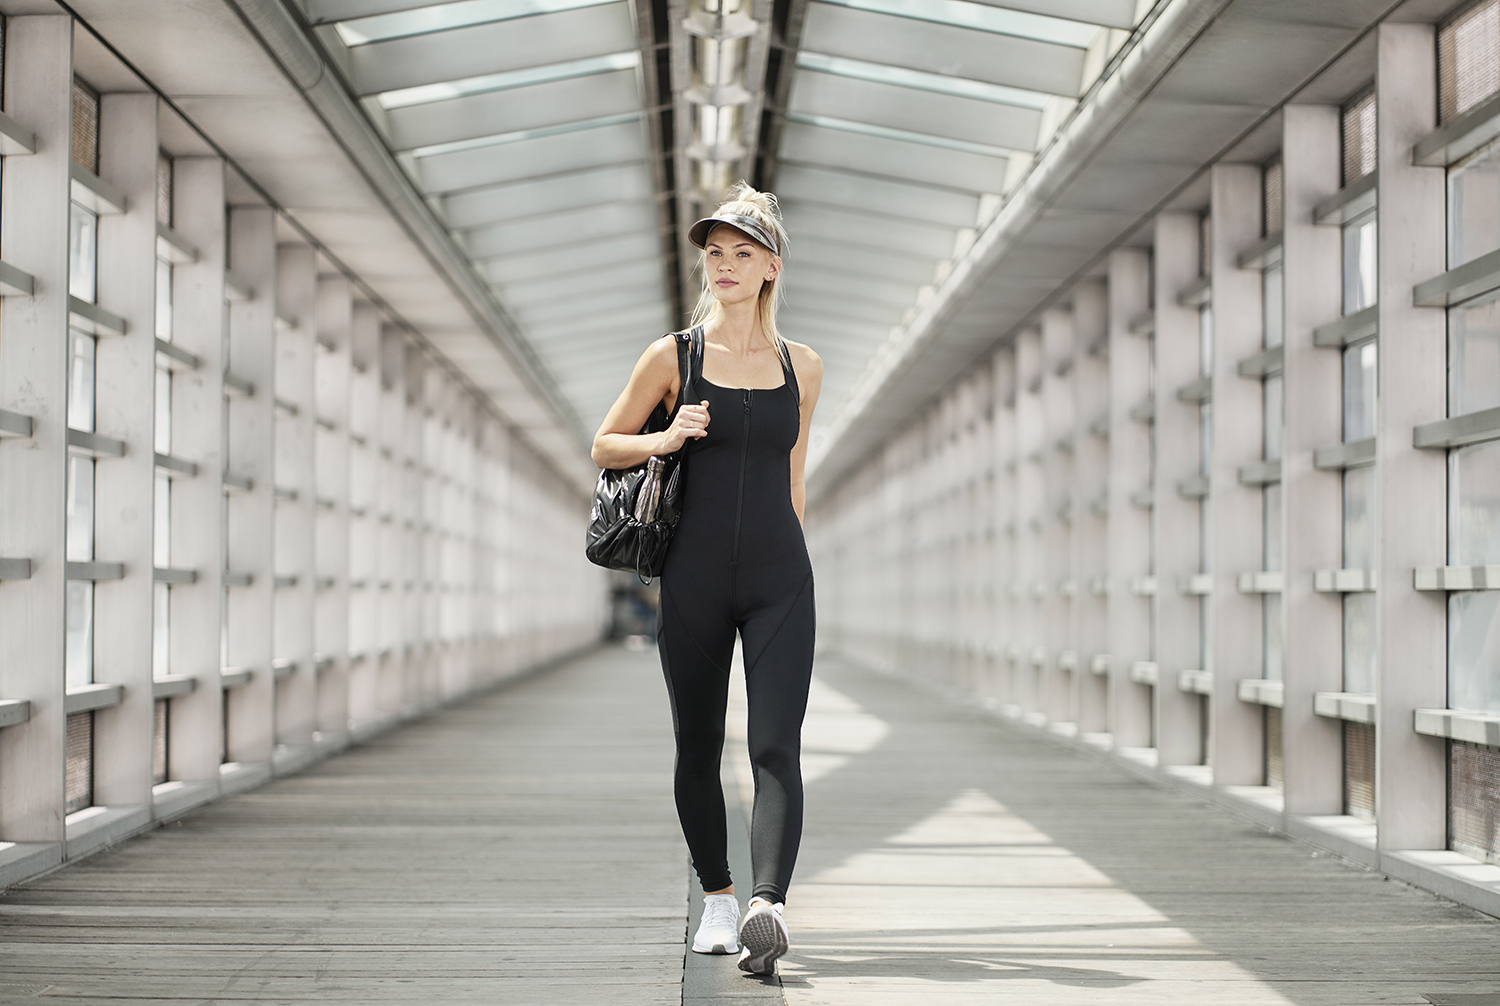 Taking inspiration from the streets of New York City, Acabada ProActiveWear's first line includes high-performance sports bras, tops, leggings, shorts, jackets, and bodysuits—all designed to be worn day into night.